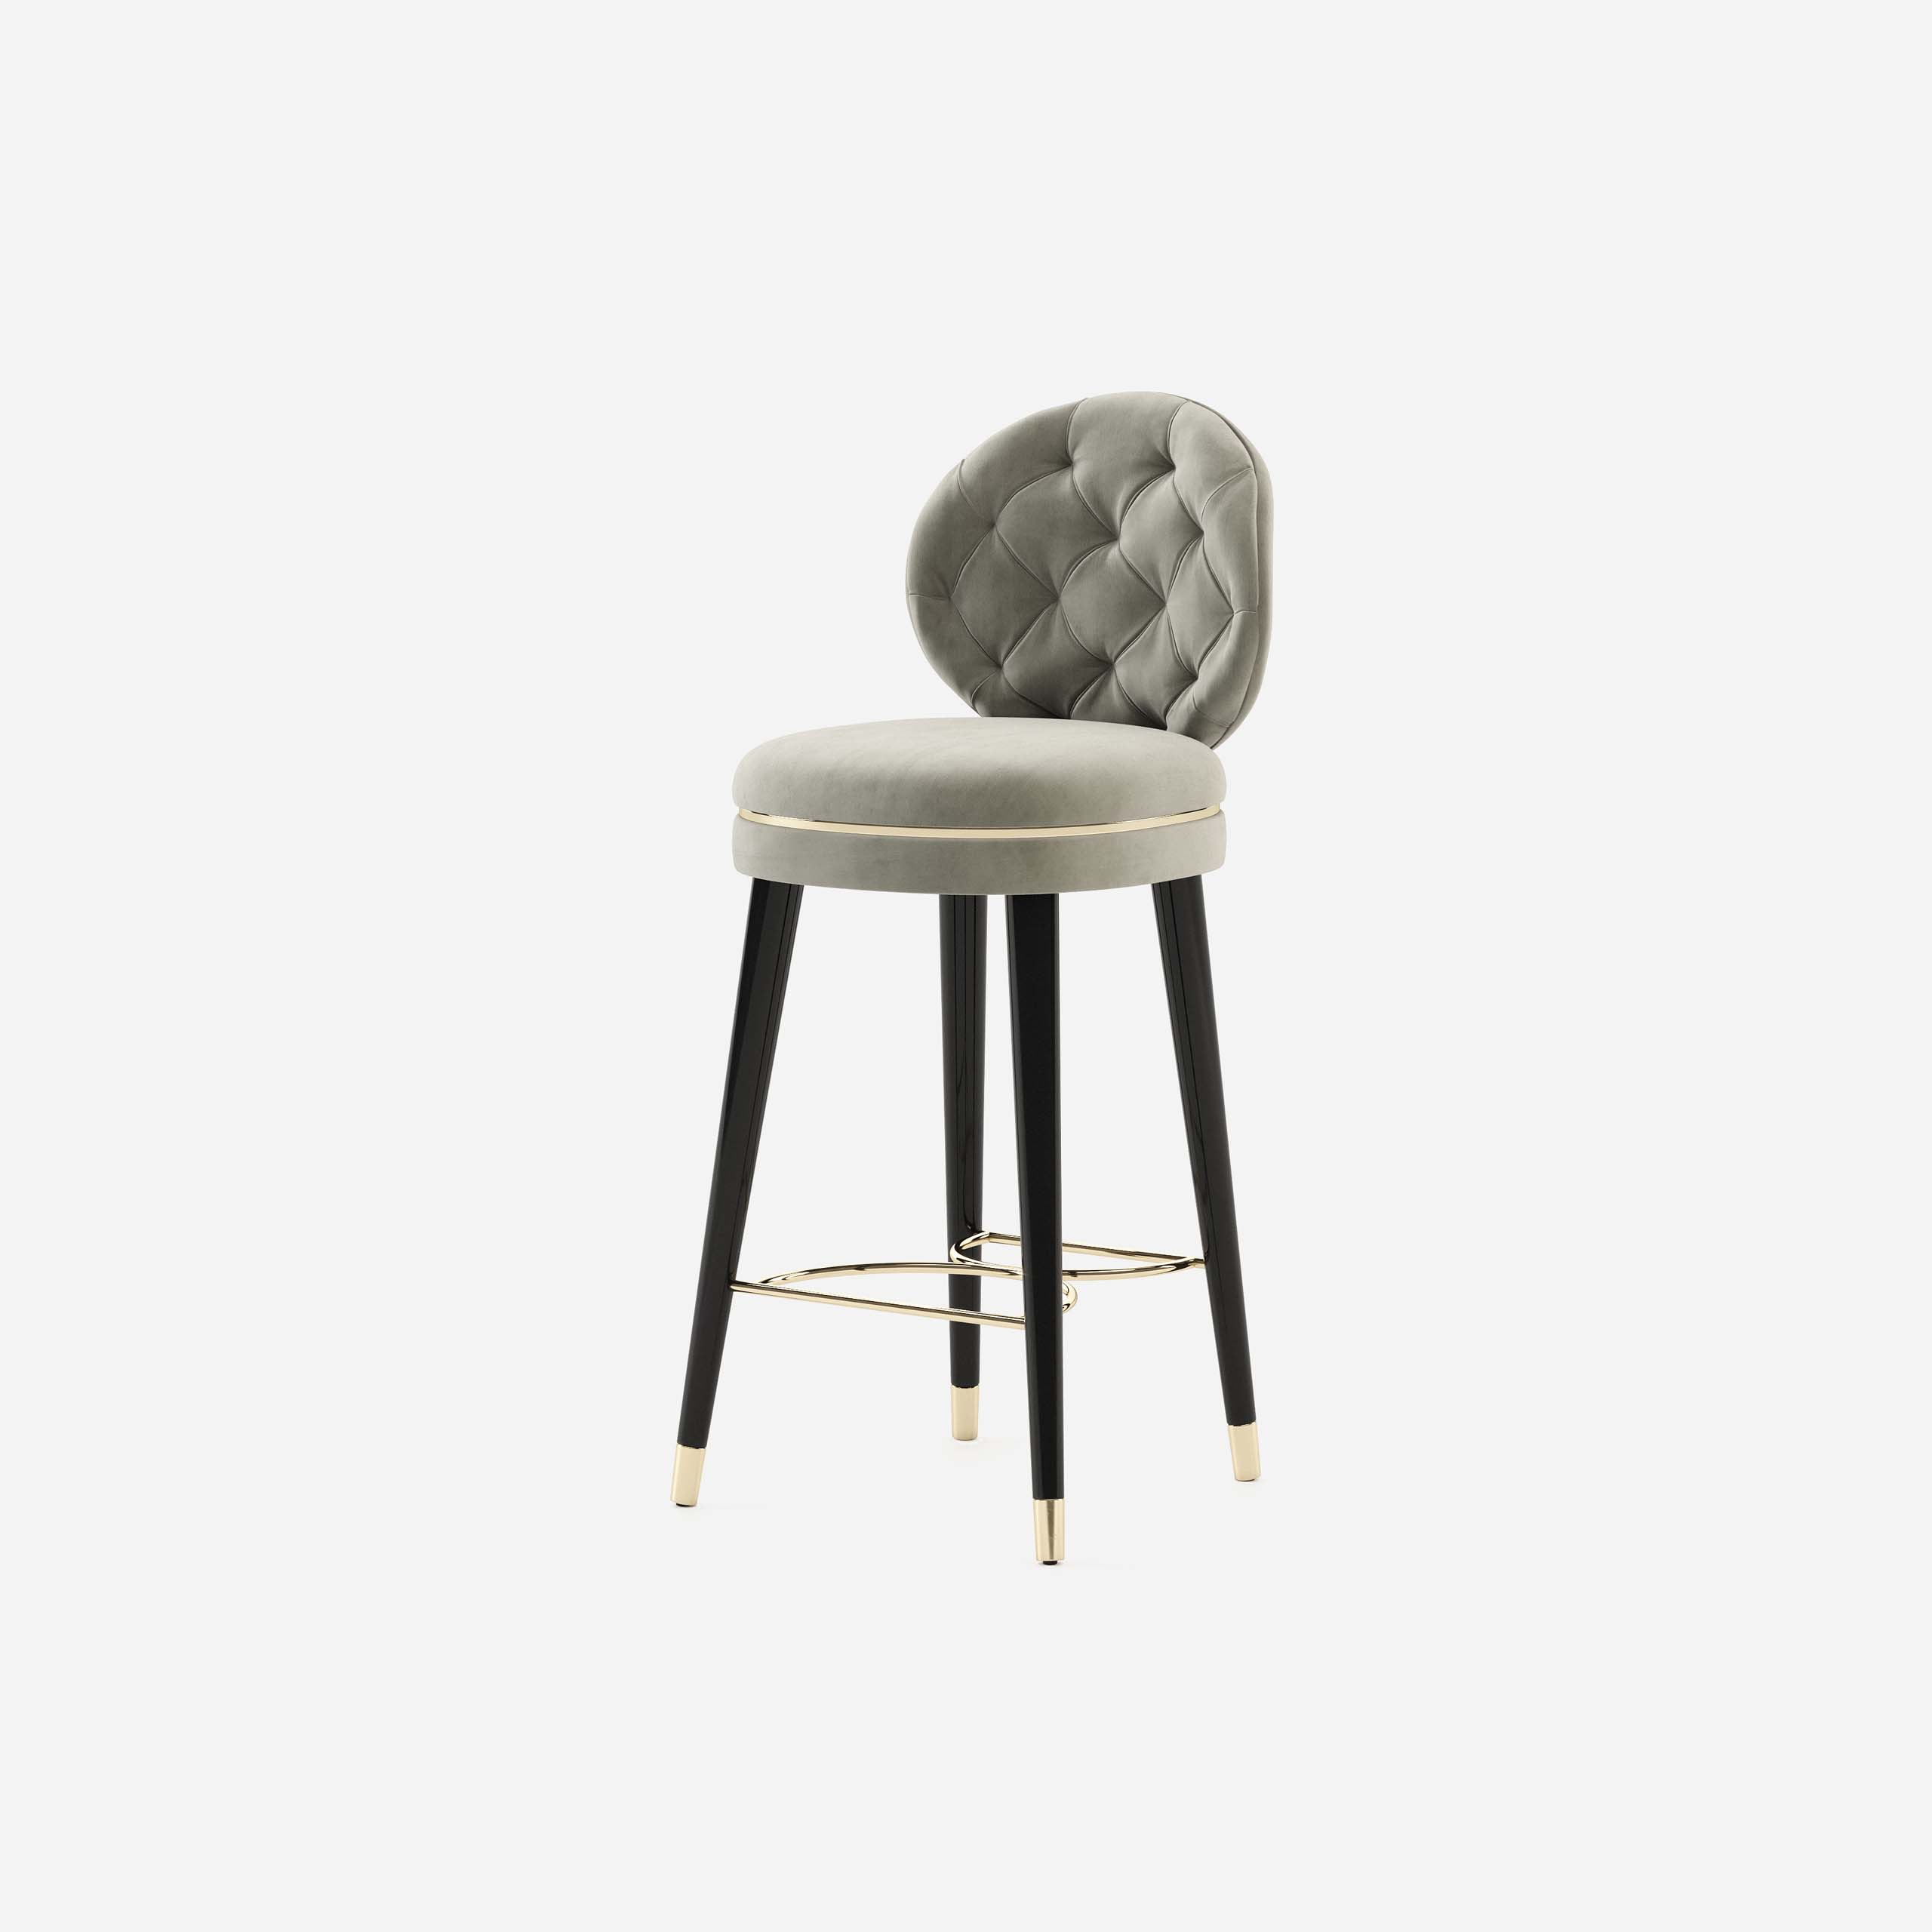 katy-counter-chair-domkapa-new-collection-2021-dining-room-decor